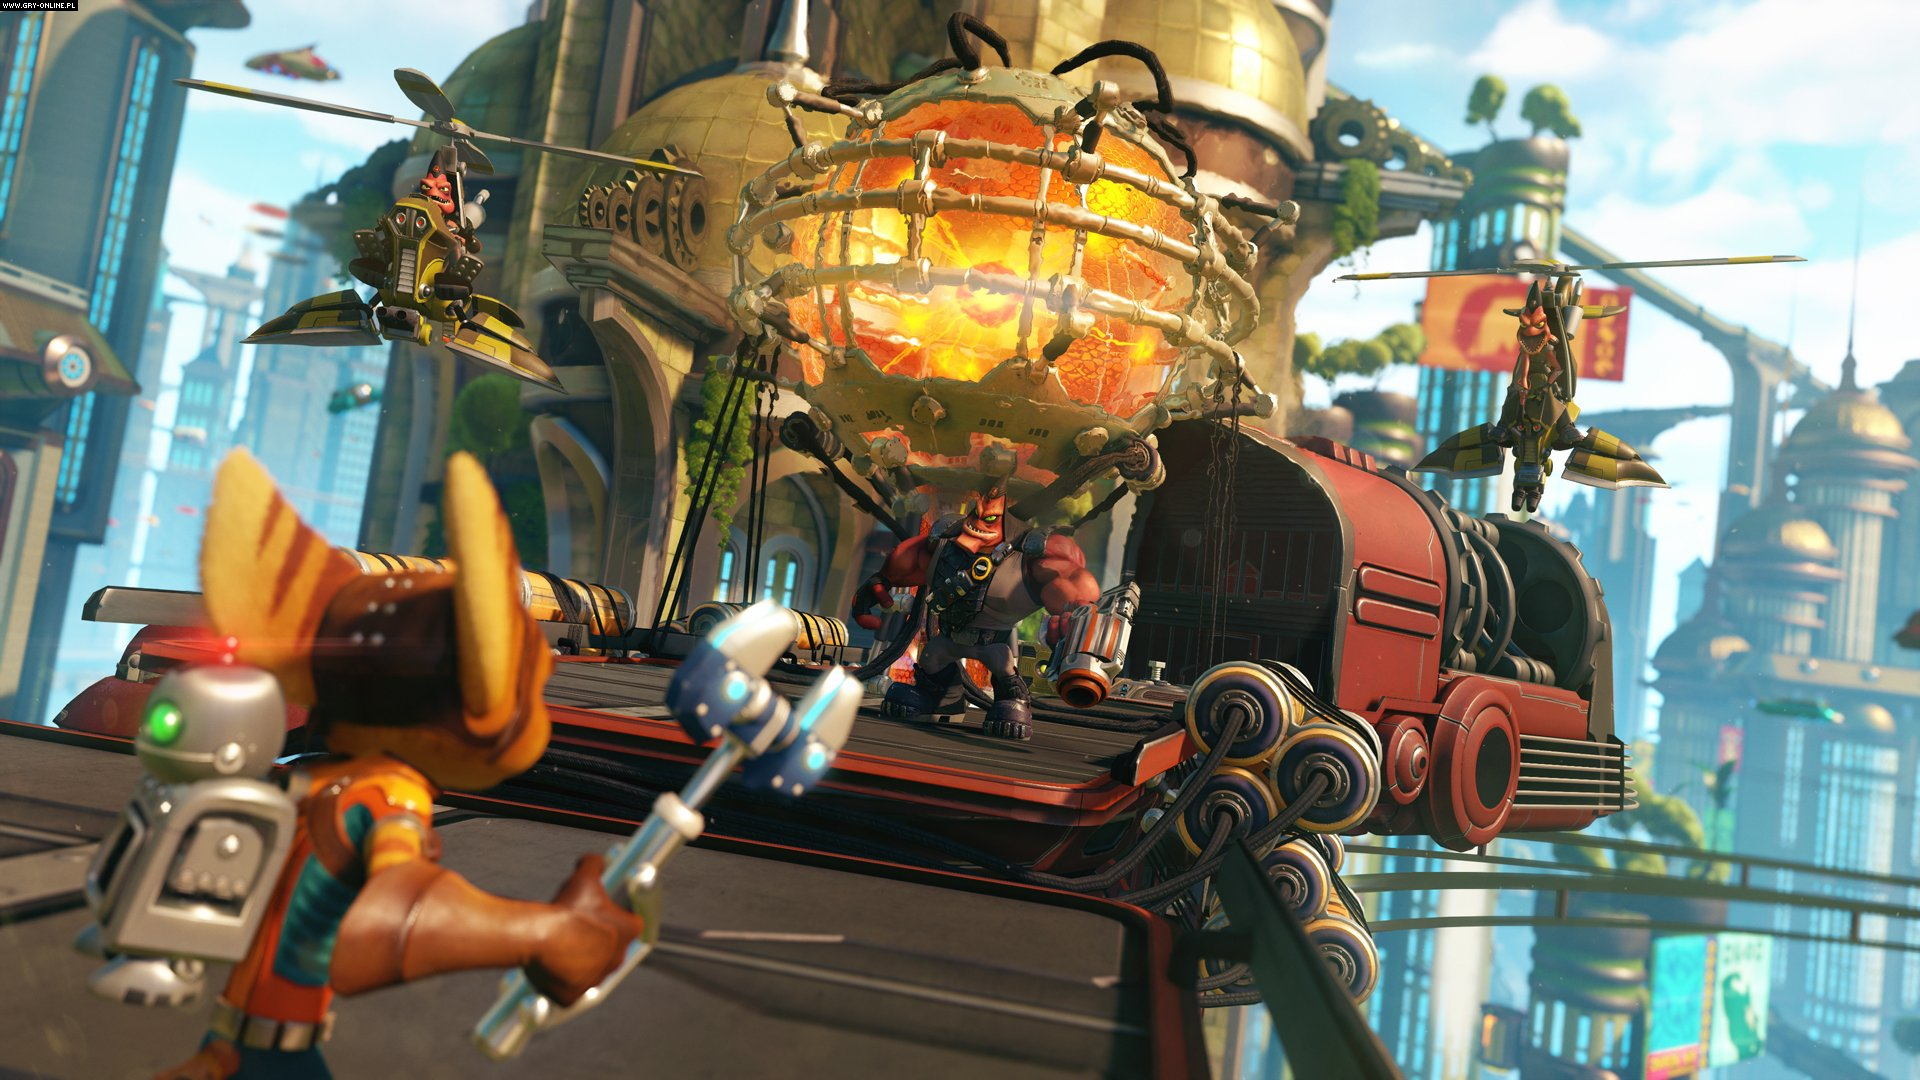 Ratchet & Clank PS4 Games Image 12/15, Insomniac Games, Sony Interactive Entertainment